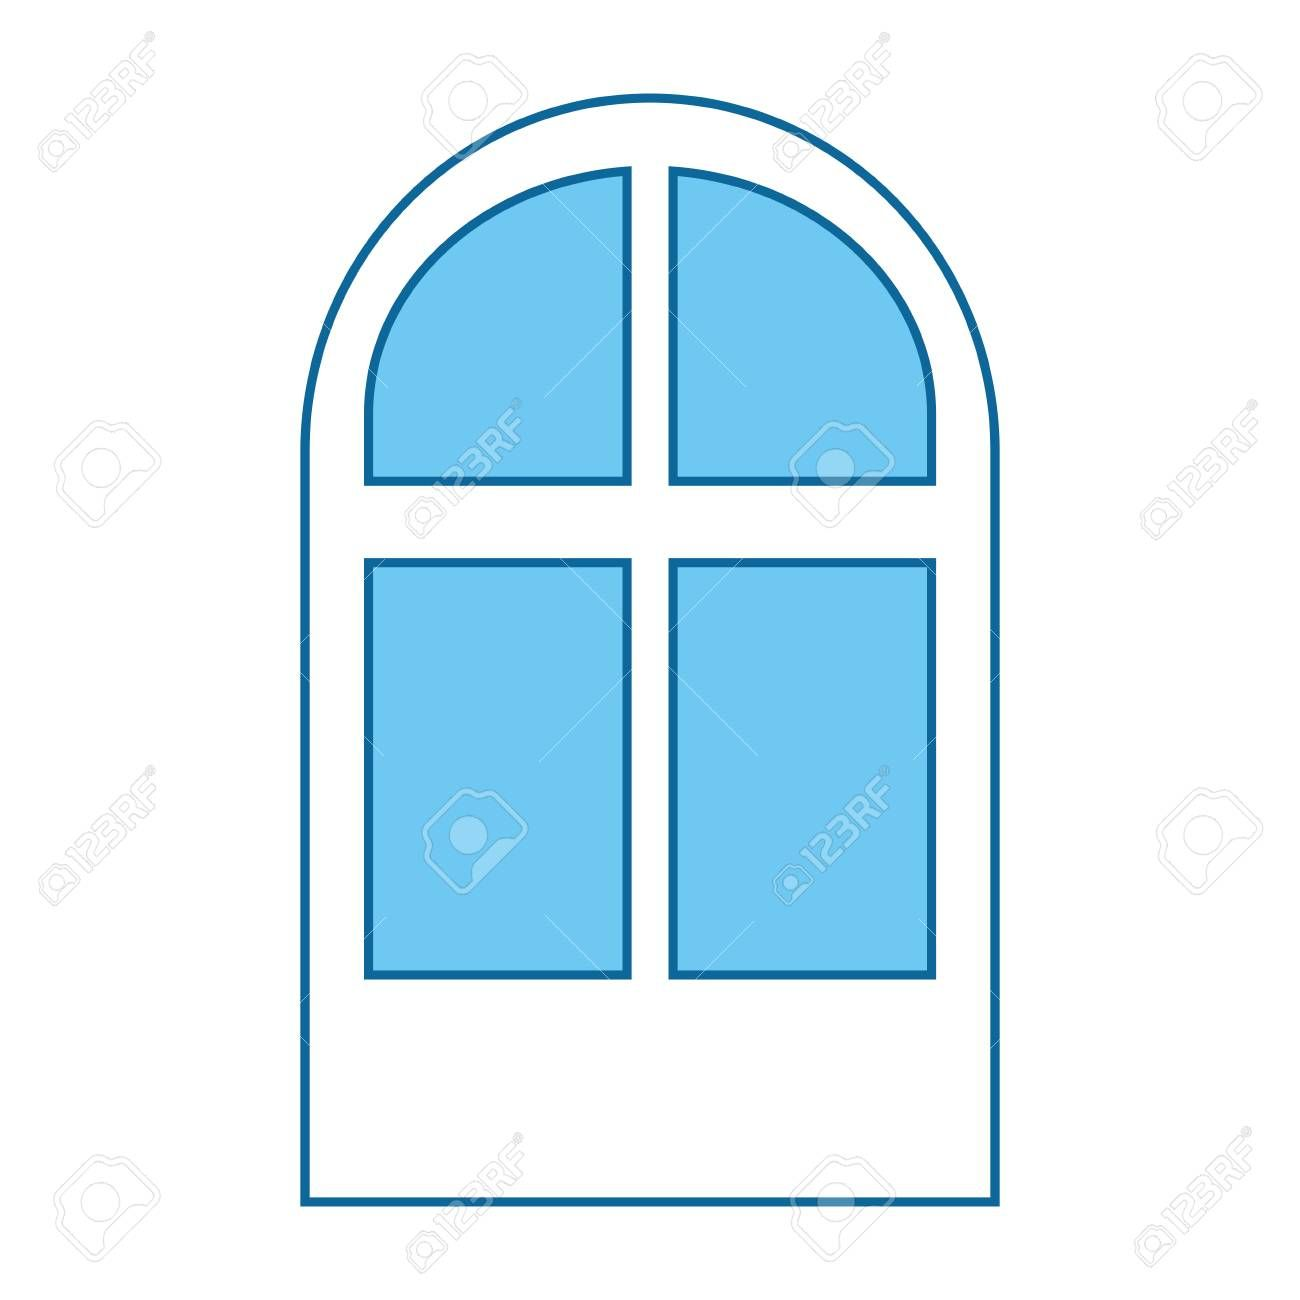 window icon over white background vector illustration Illustration